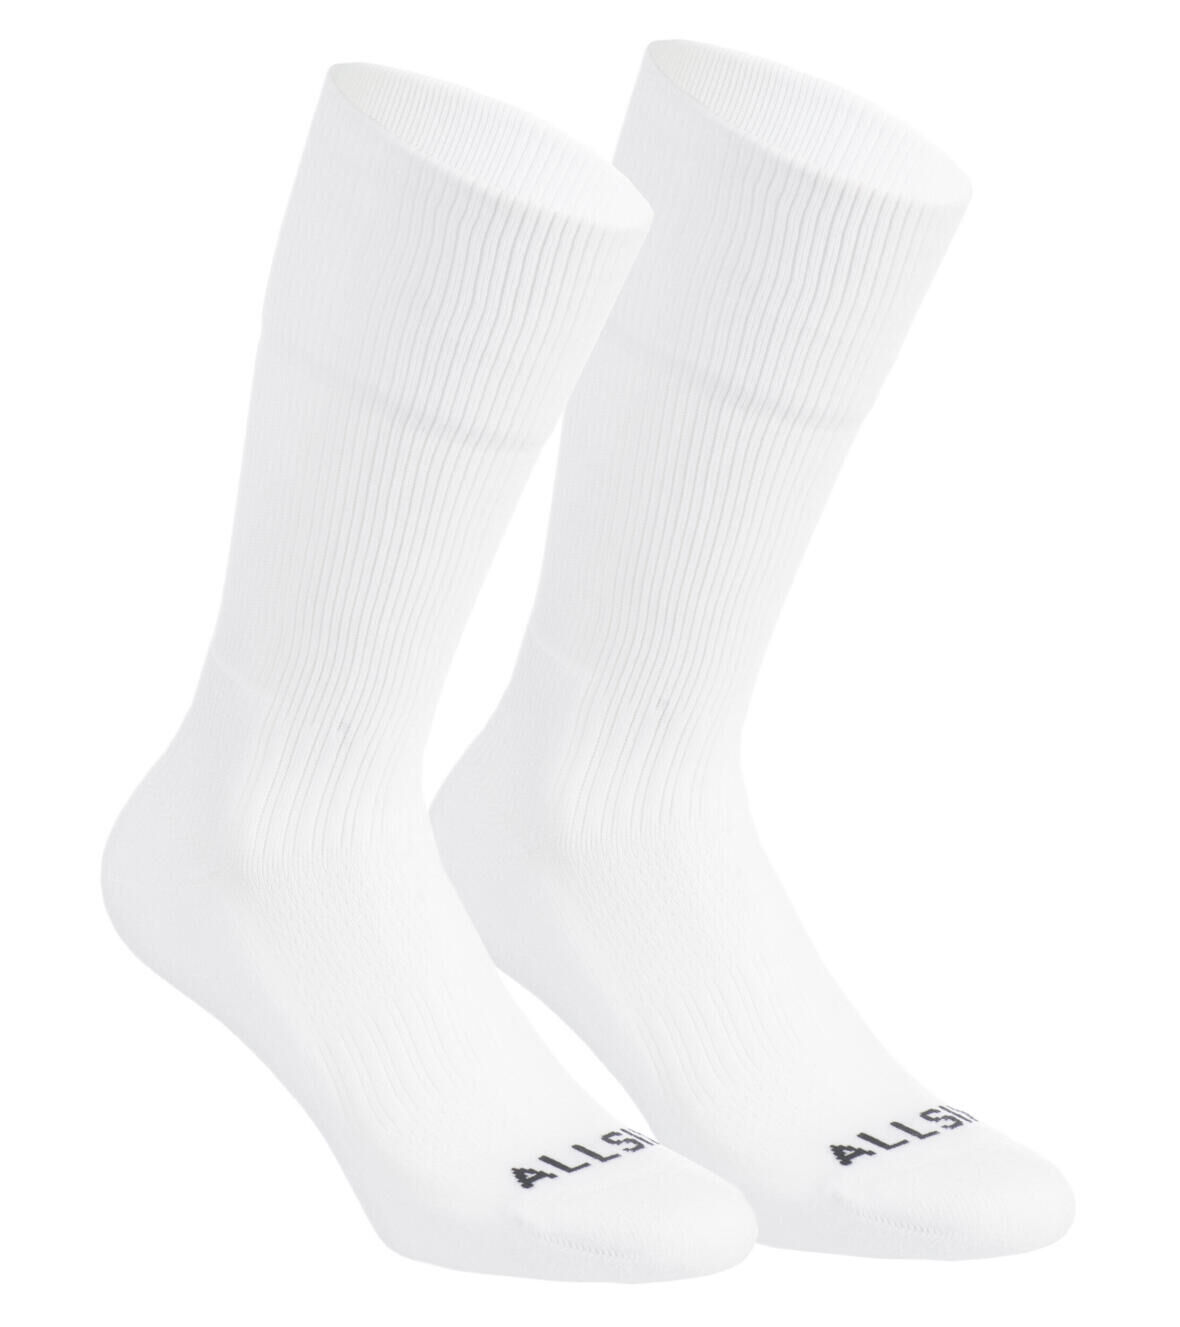 chaussettes de volleyball ALLSIX blanches